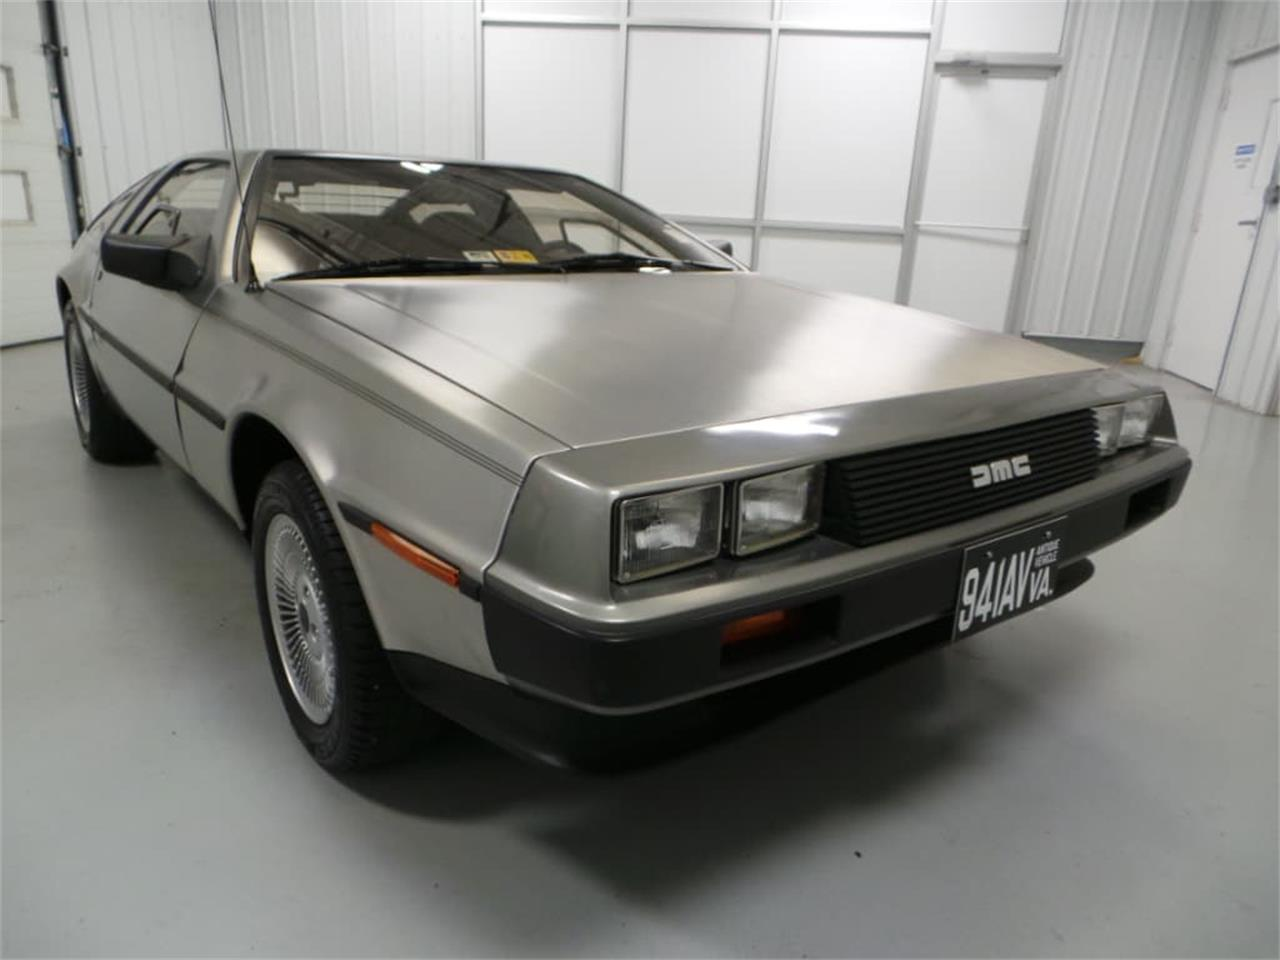 Large Picture of 1981 DeLorean DMC-12 - $42,000.00 - JLCI